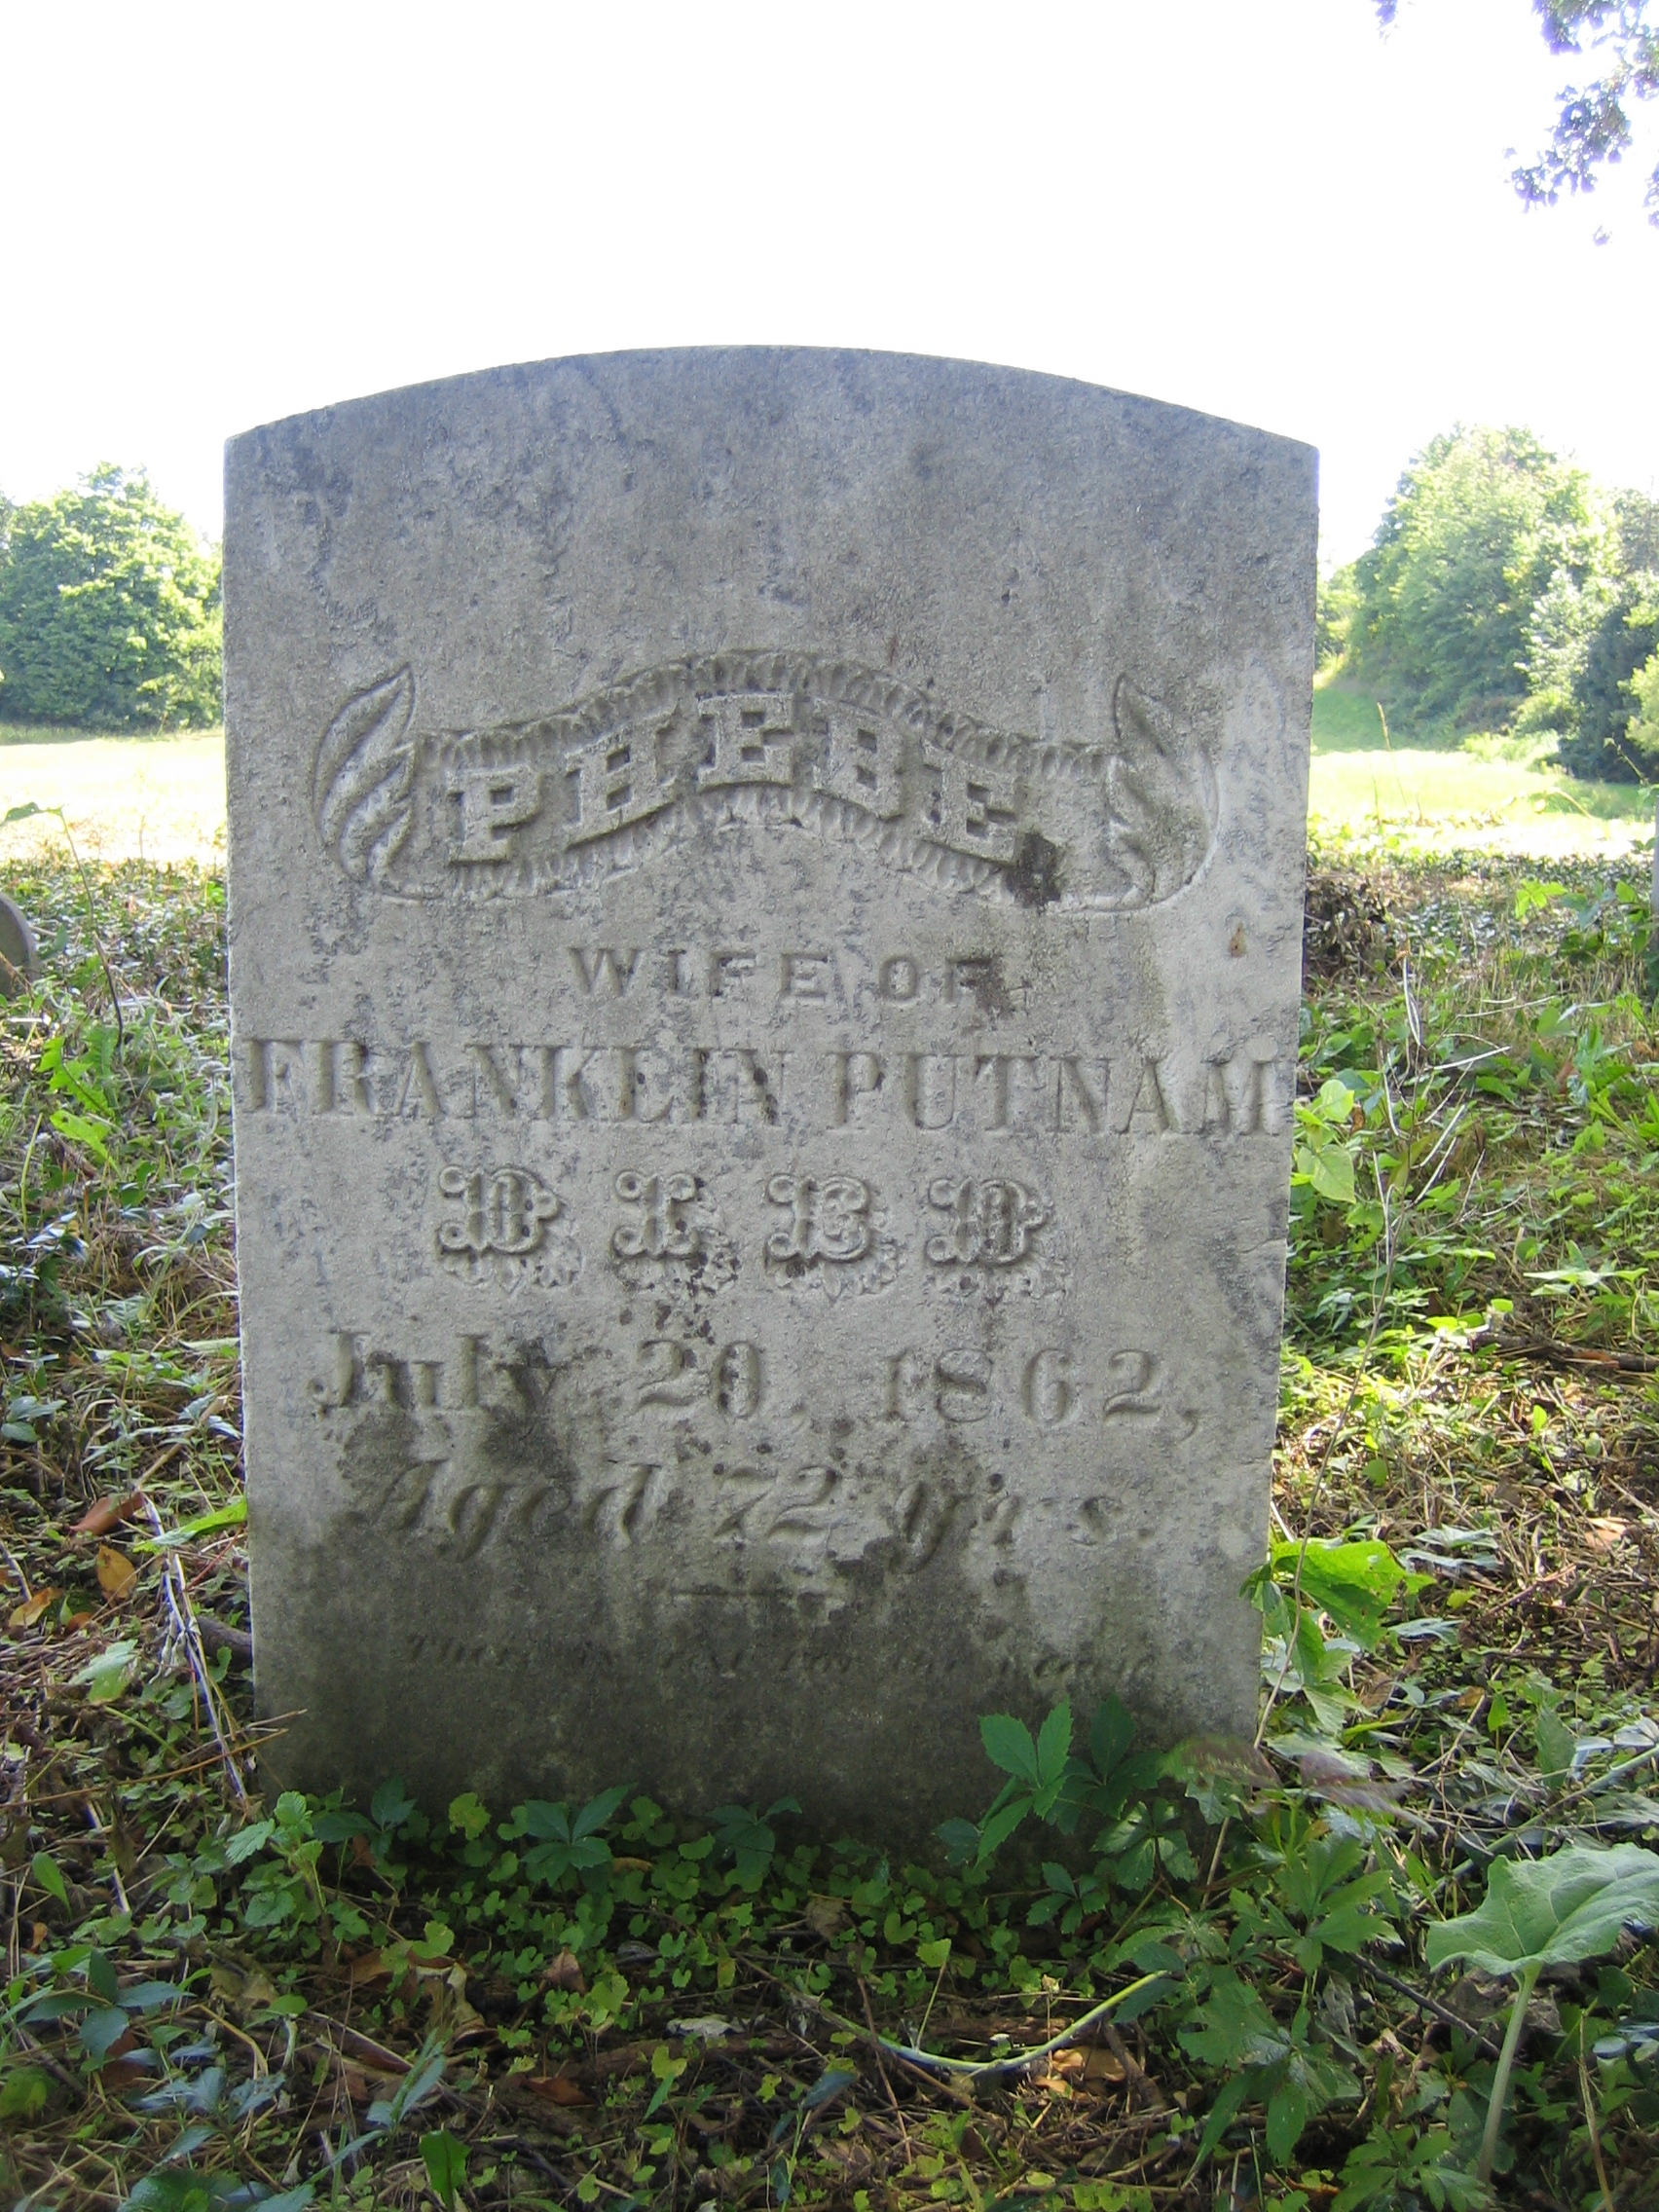 Phebe Burroughs Putnam's tombstone in the Putnam Settlement Cemetery, Genesee County, New York.